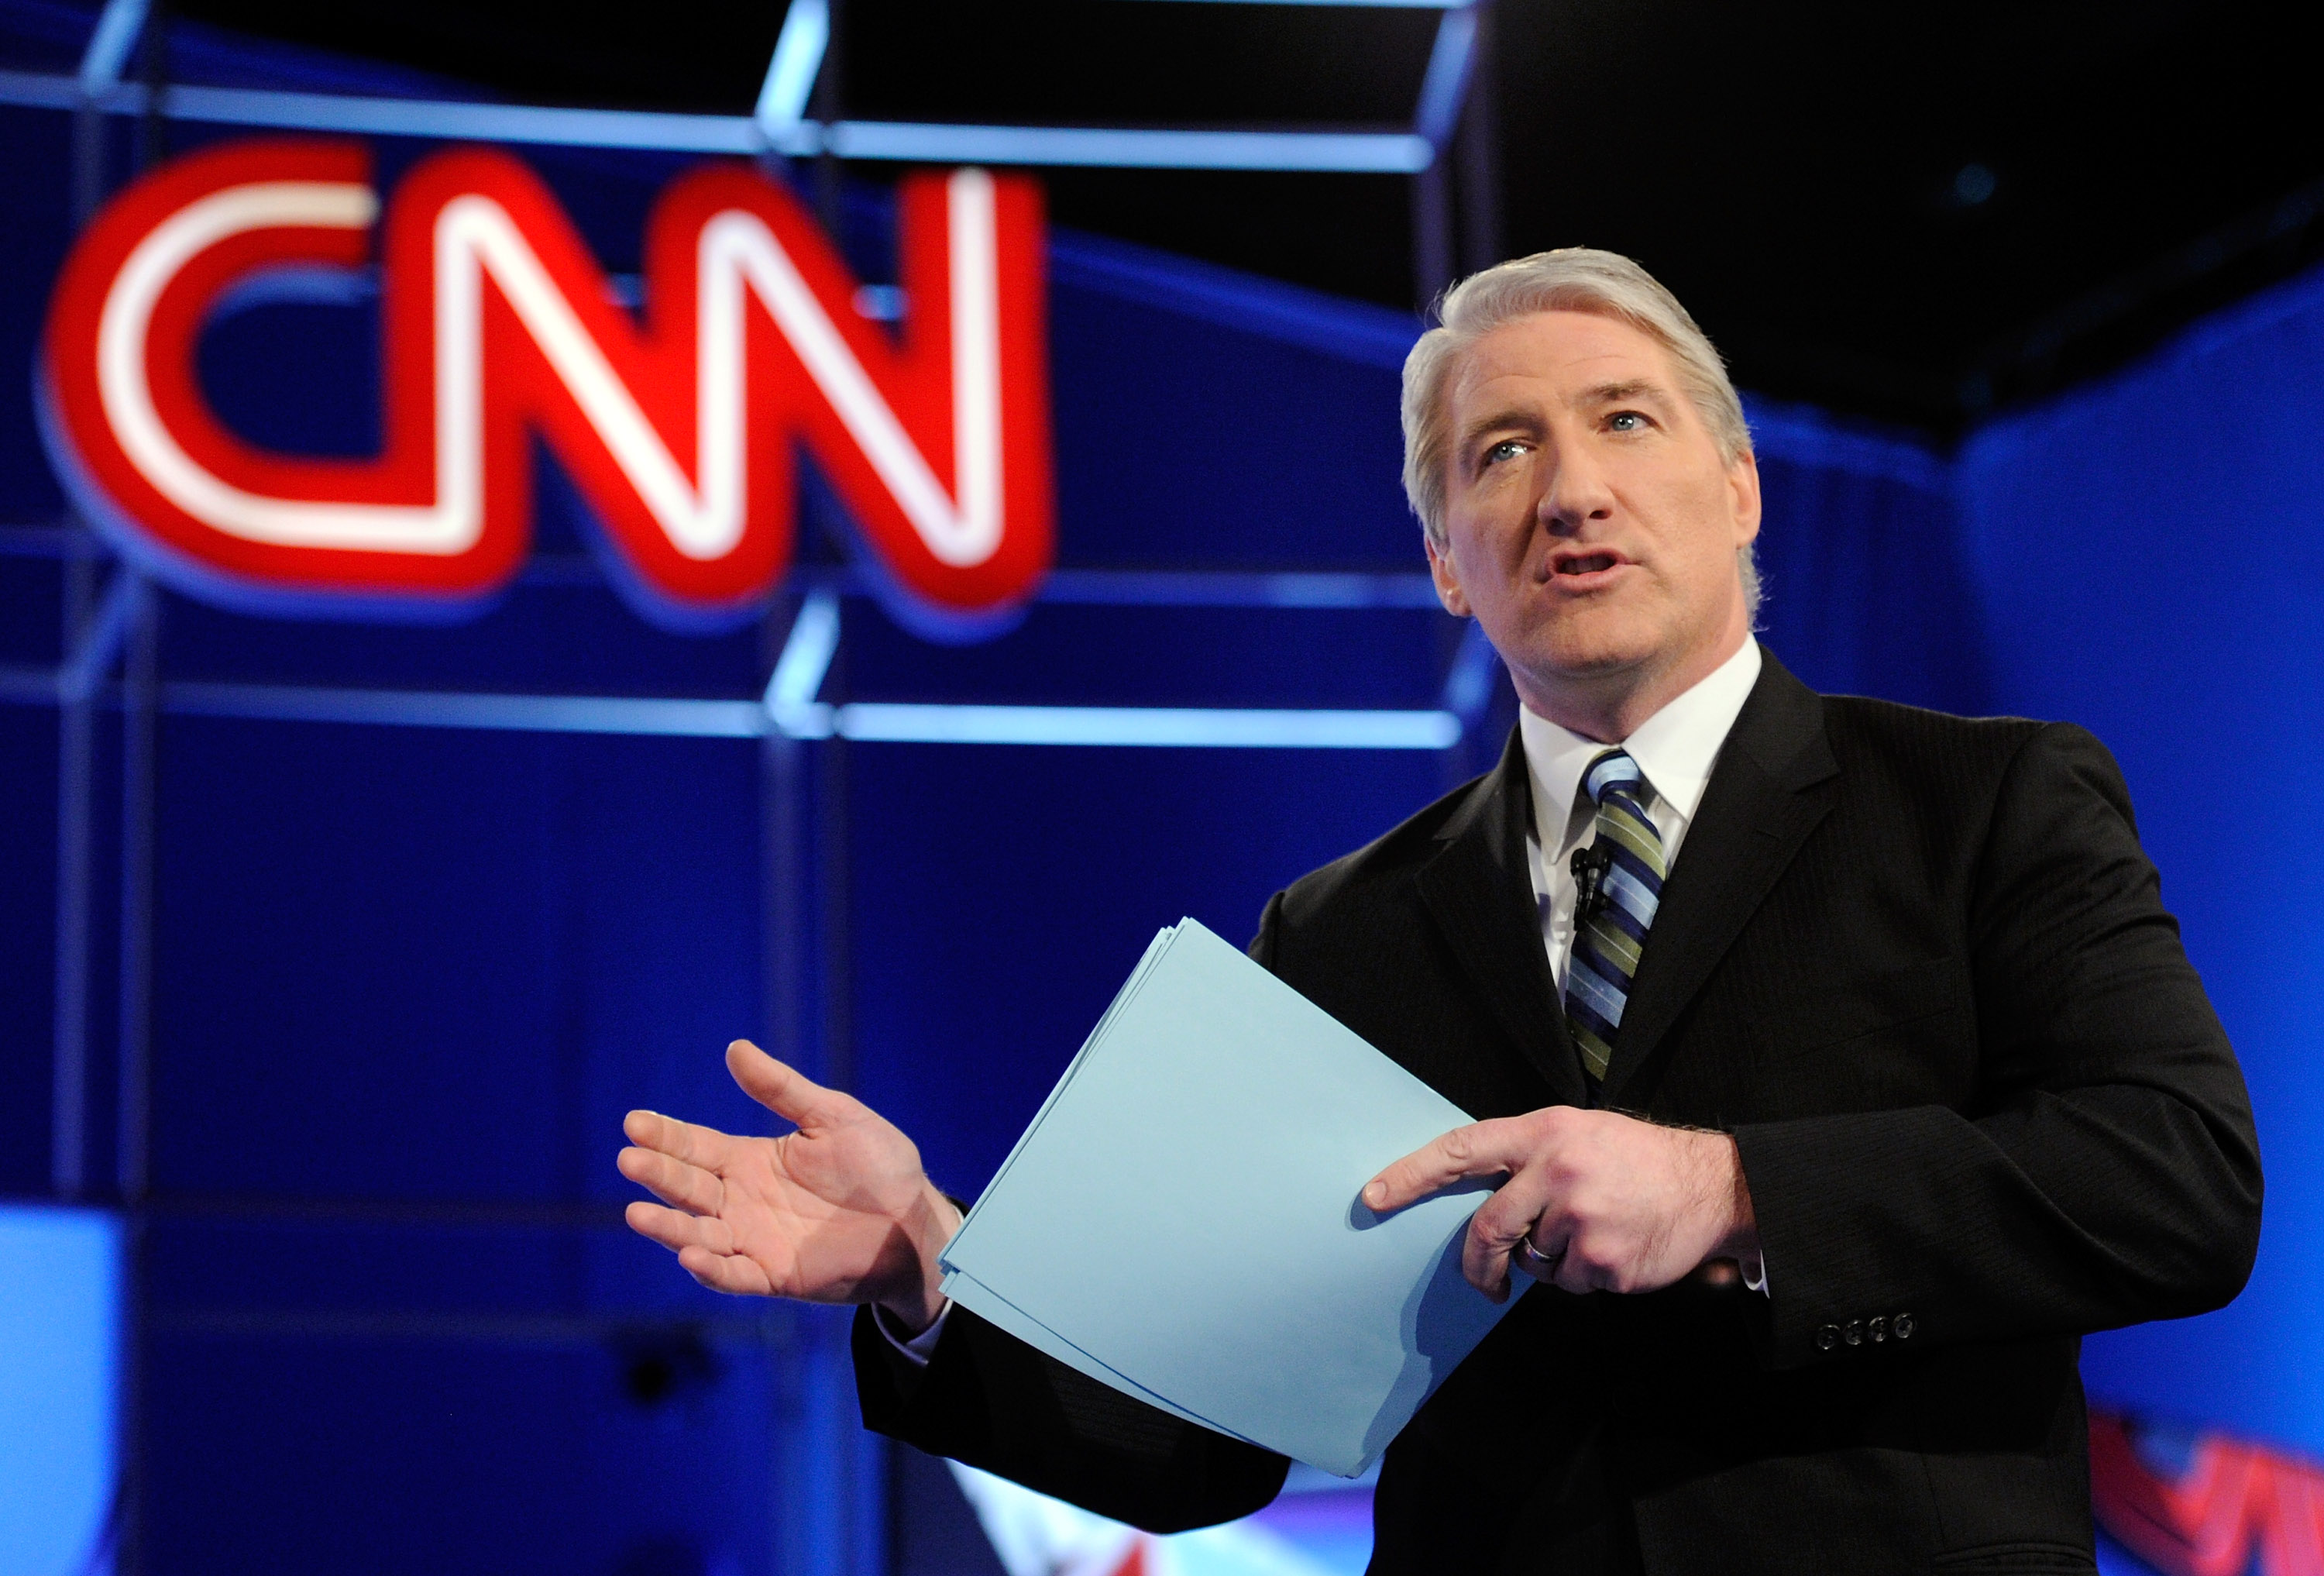 CNN correspondent John King talks to the audience before moderating a debate between Republican presidential candidates on February 22, 2012 in Mesa, Arizona. On Nov. 6, 2018 the CNN correspondent John King was seen walking around aimlessly around the CNN studio during the midterm election.